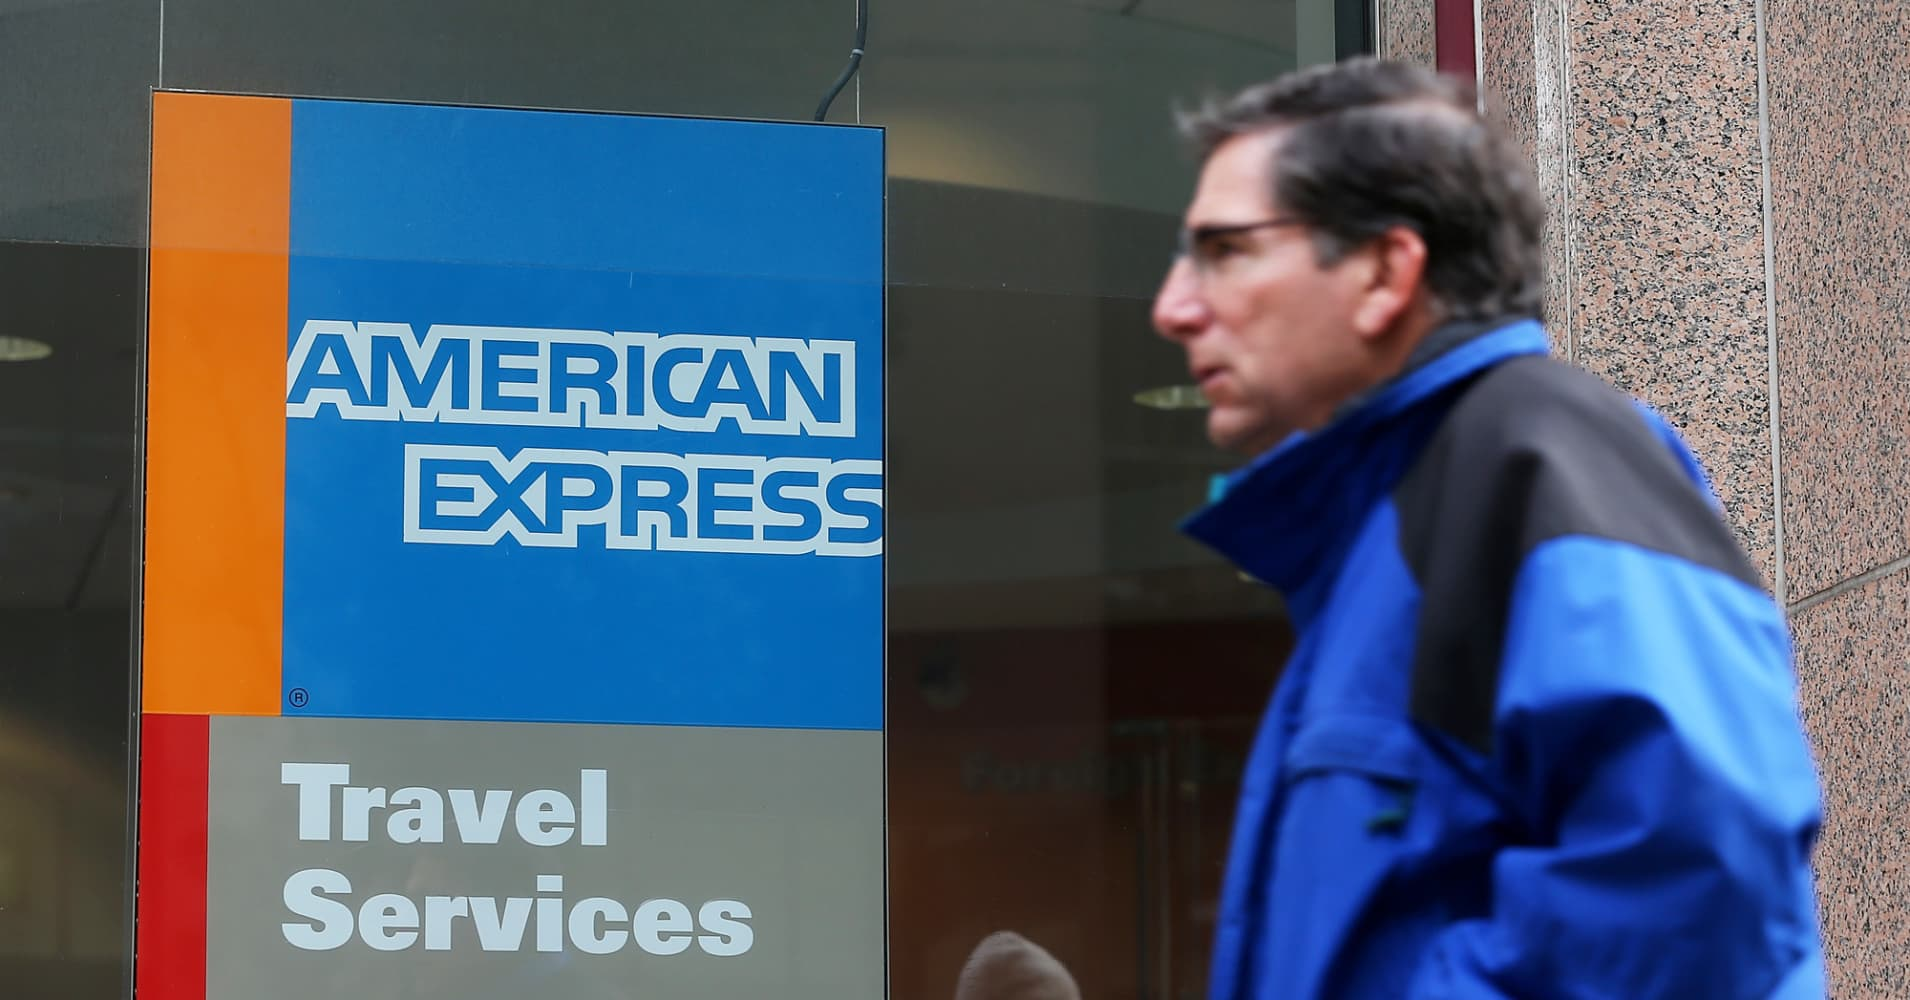 American Express plans to suspend share buyback due to tax reform